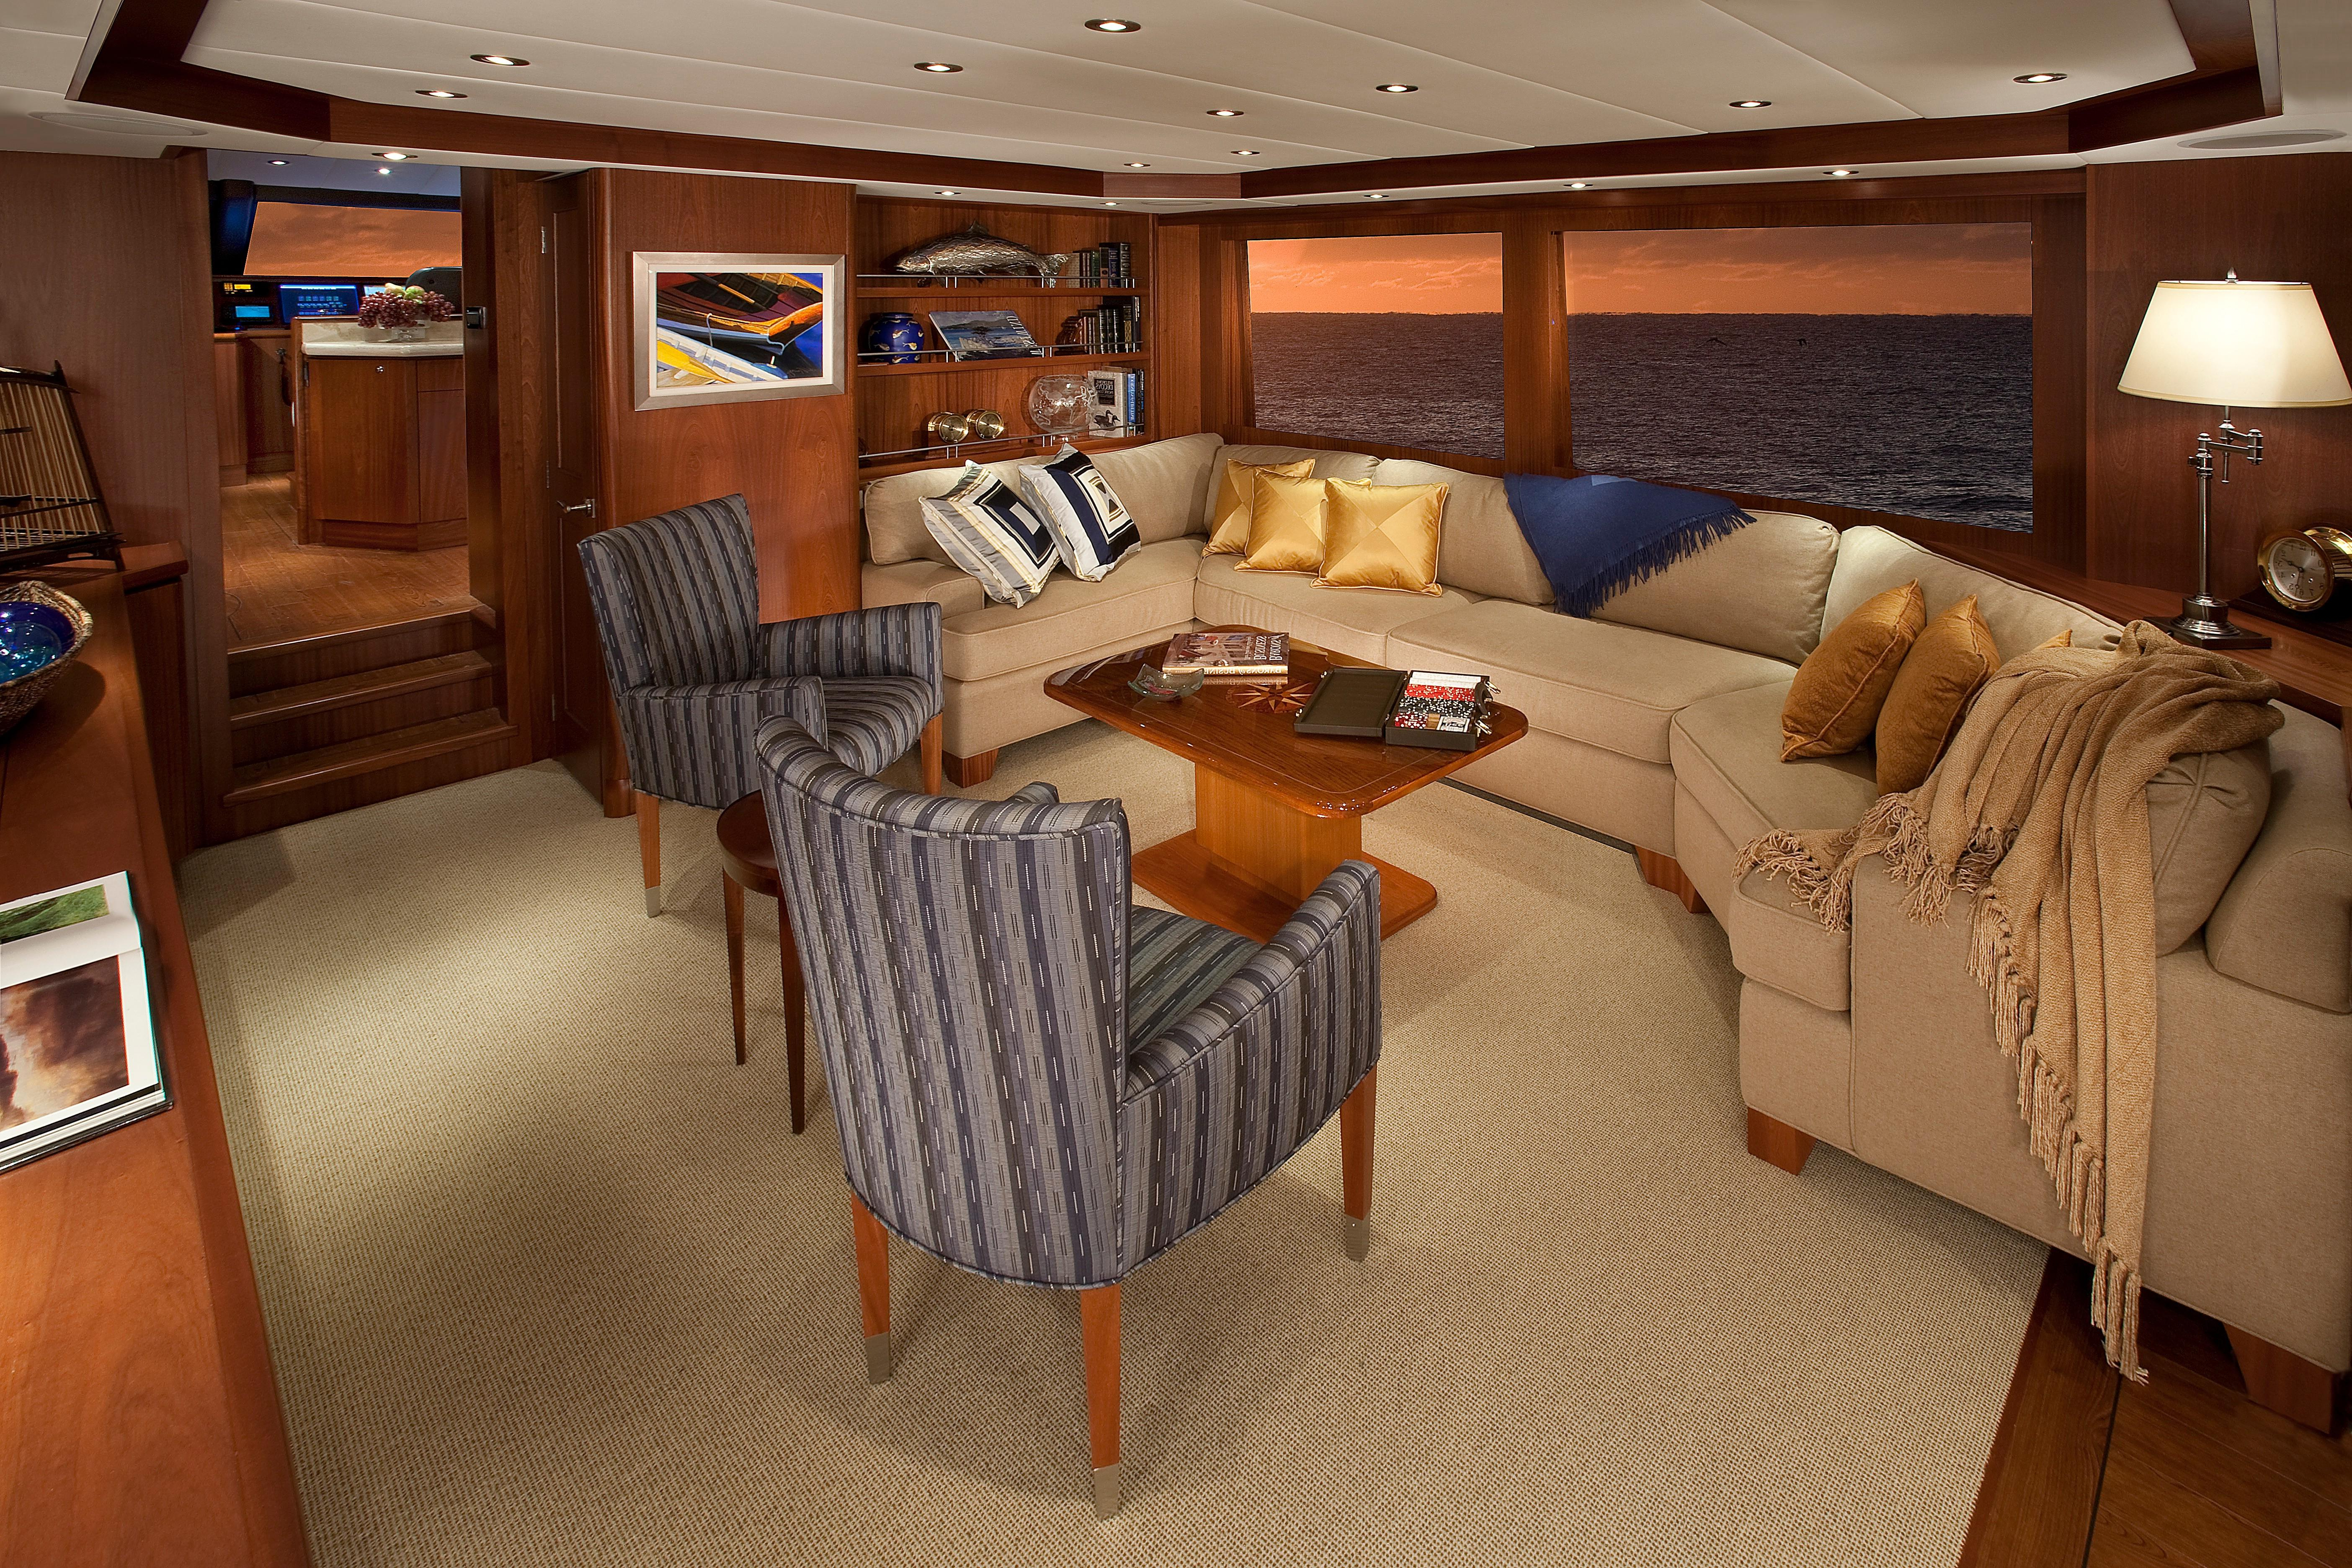 Meriweather Queenship 2009 74 Rph 74 Yacht For Sale In Us With Mikelson Media Console Tables (View 11 of 20)